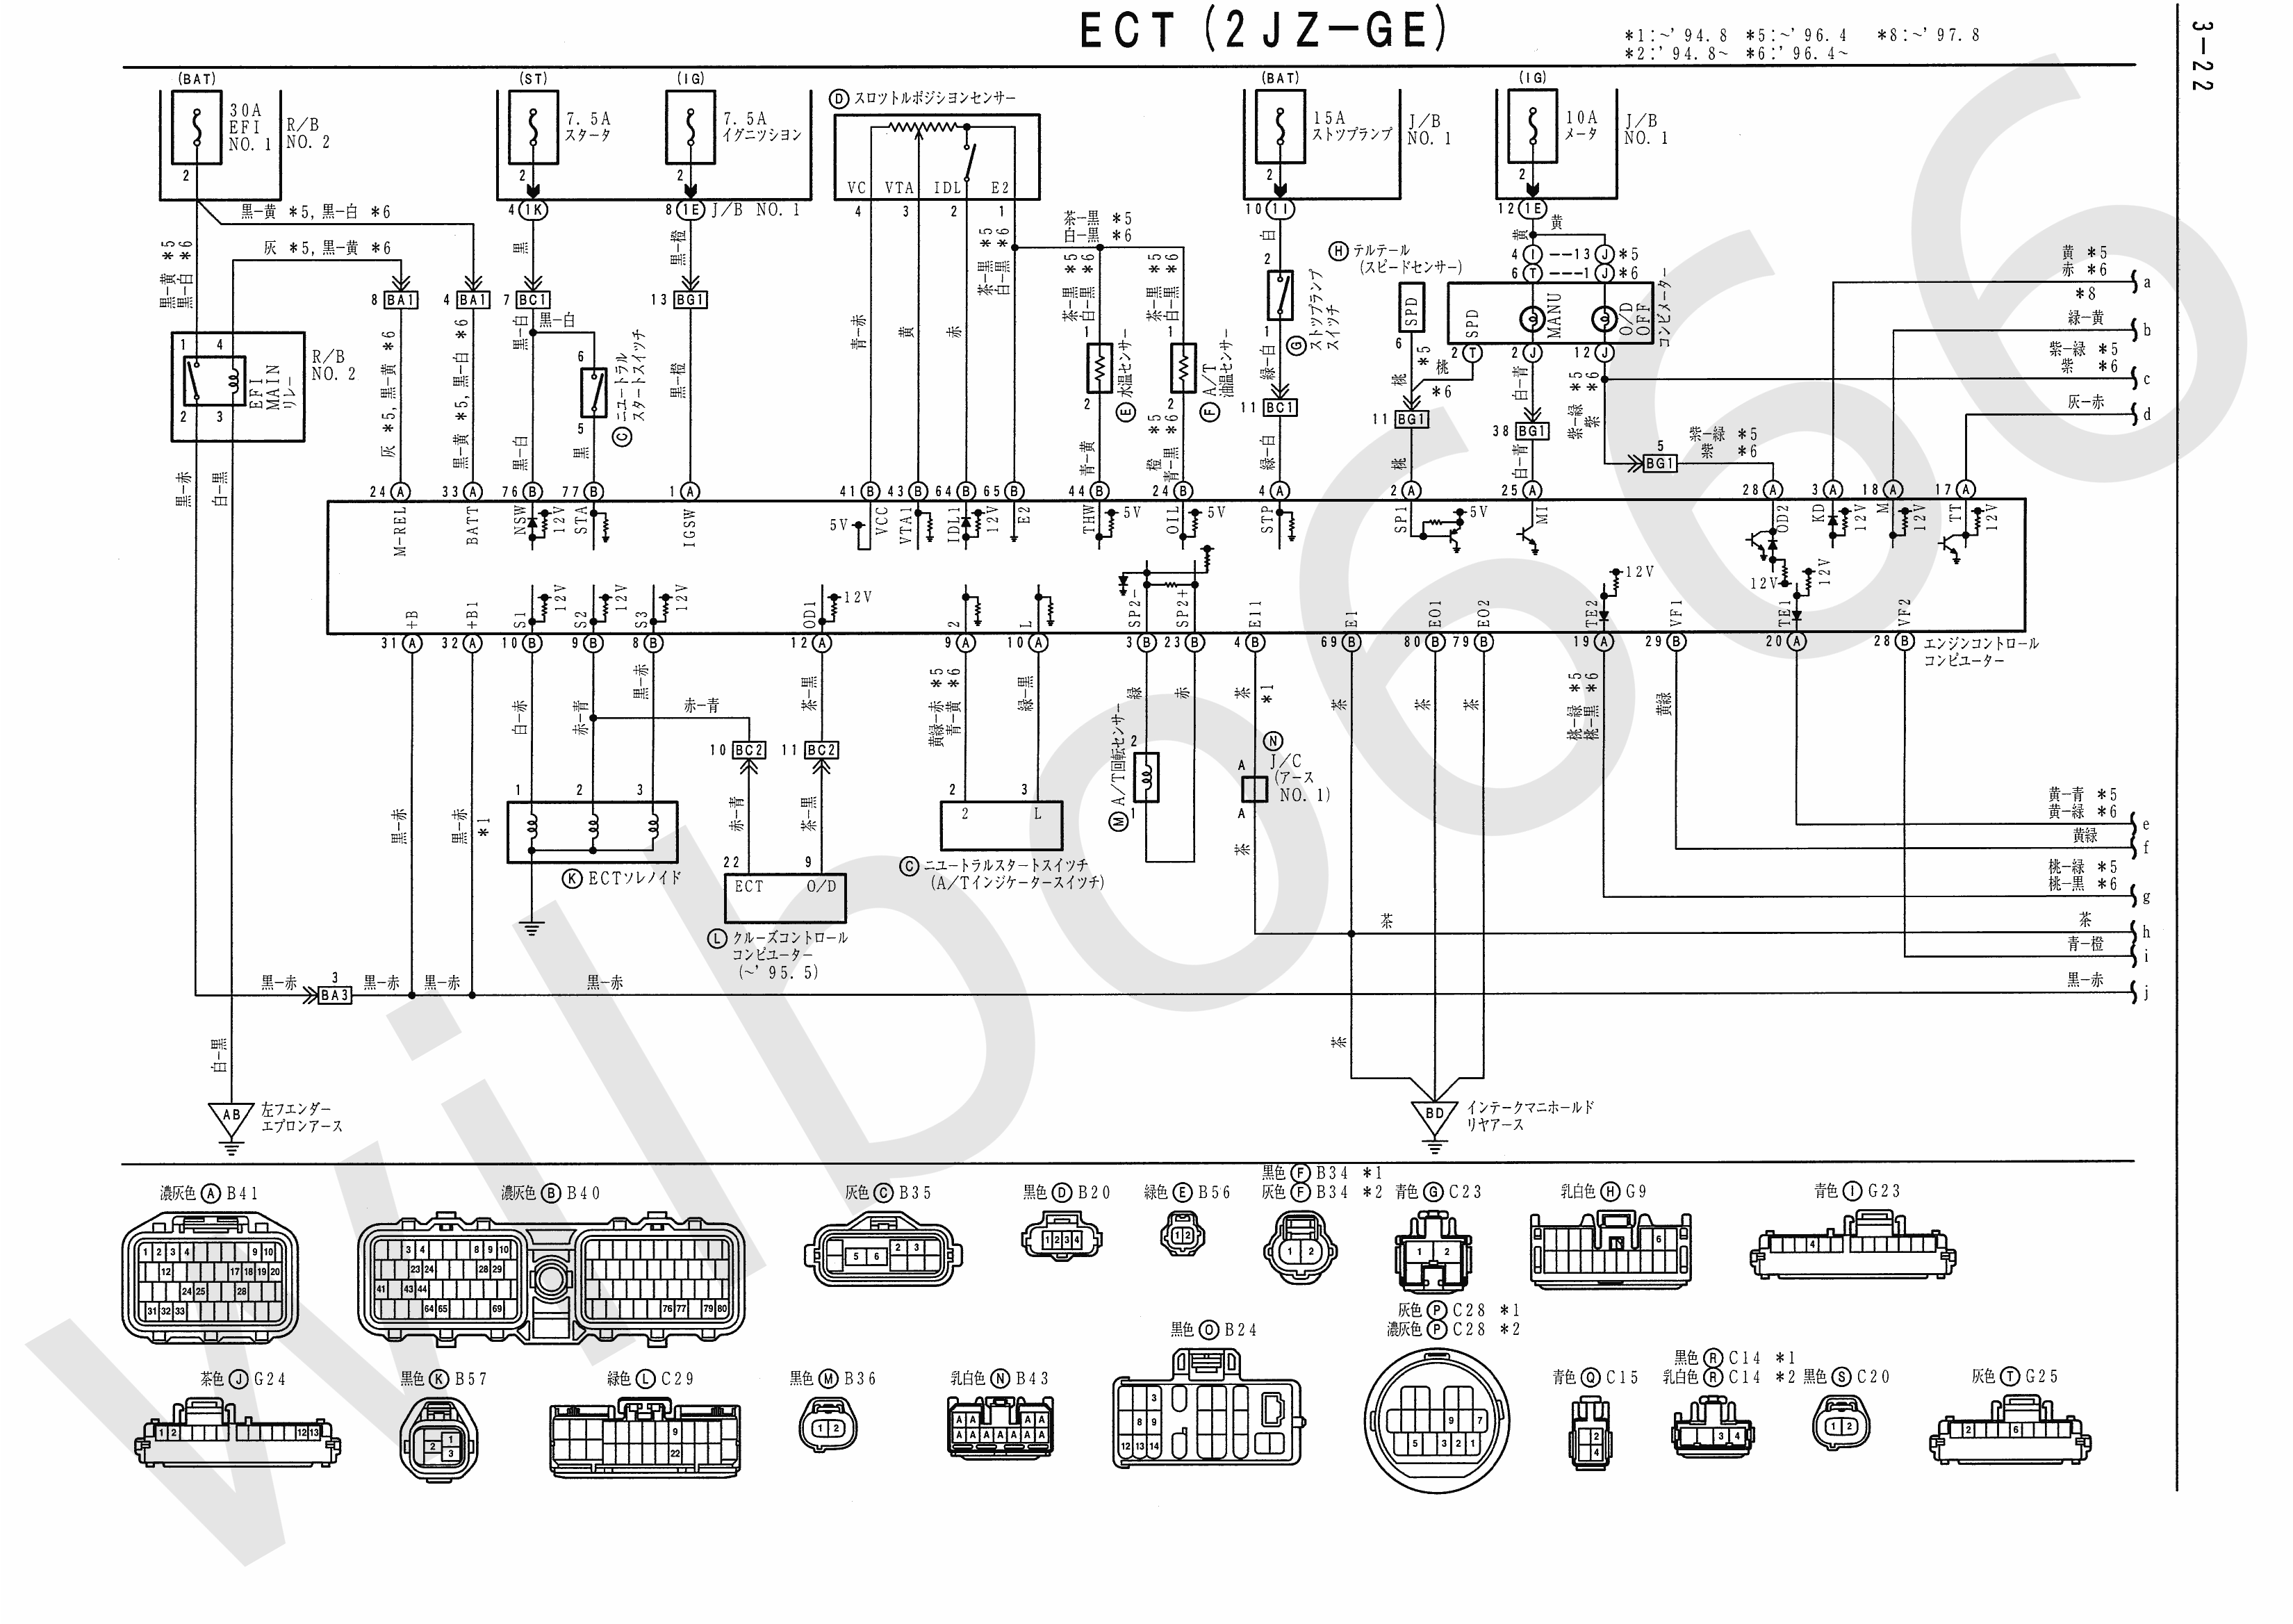 Wiring Diagram Toyota 3s Ge Dishwasher Schematic Refrigerator Electrical Wilbo666 2jz Jza80 Supra Engine On